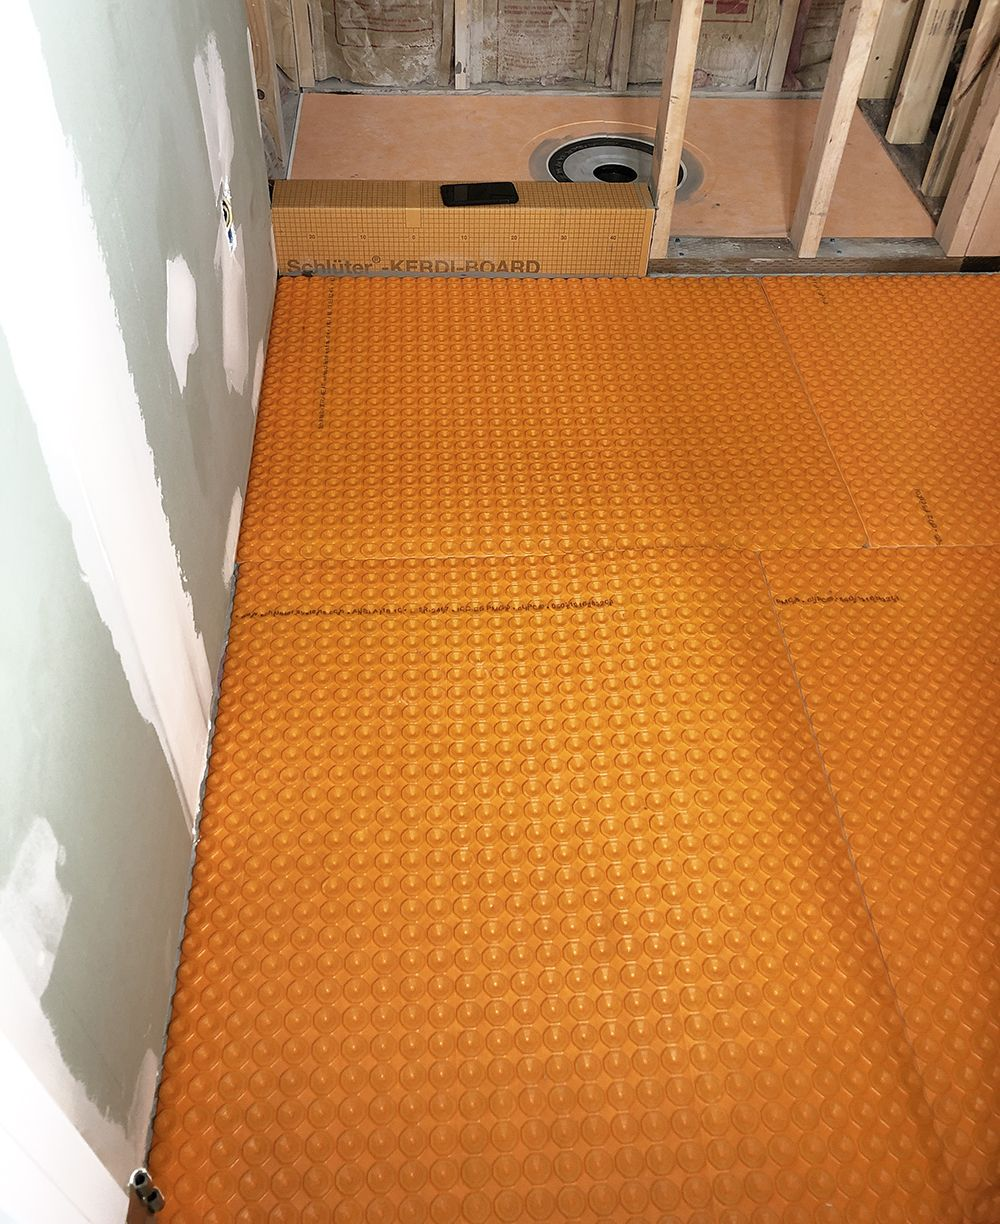 Diy Heated Floor Tile Tutorial In 2020 Heated Floors Tile Floor Tiles